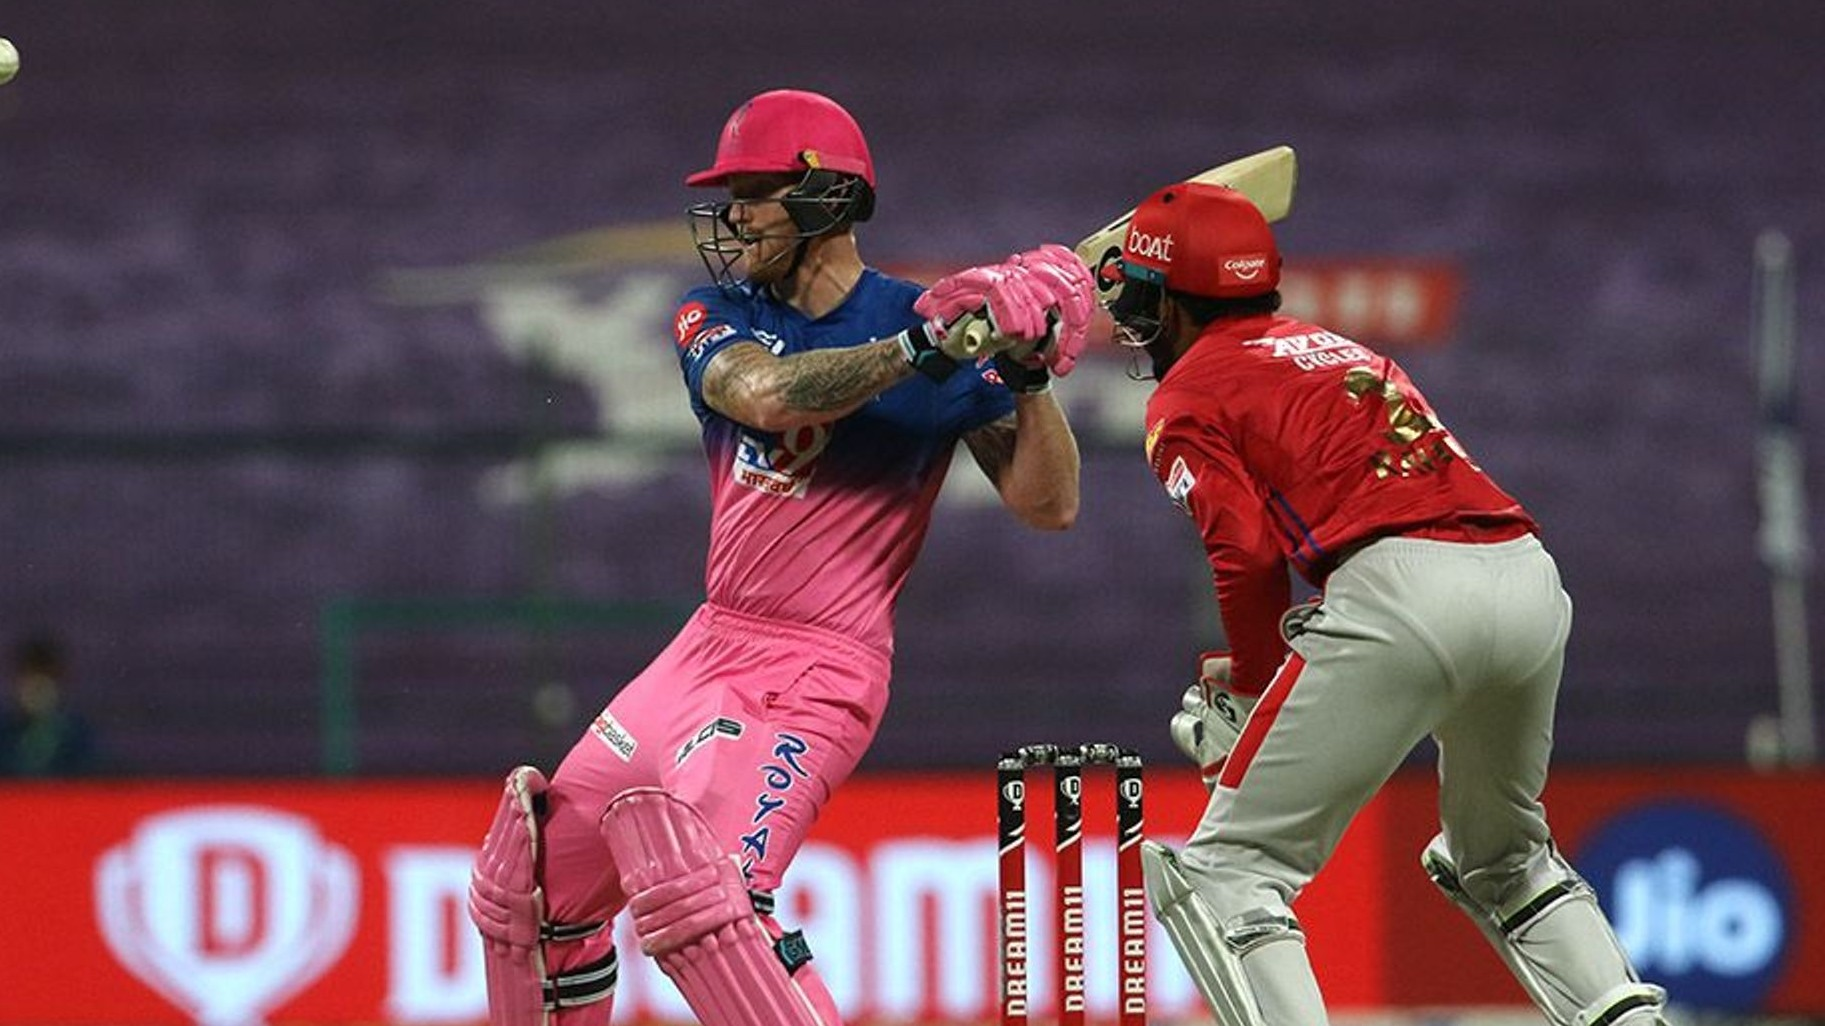 IPL 2020: Match 50, KXIP v RR - Statistical Highlights of the Match